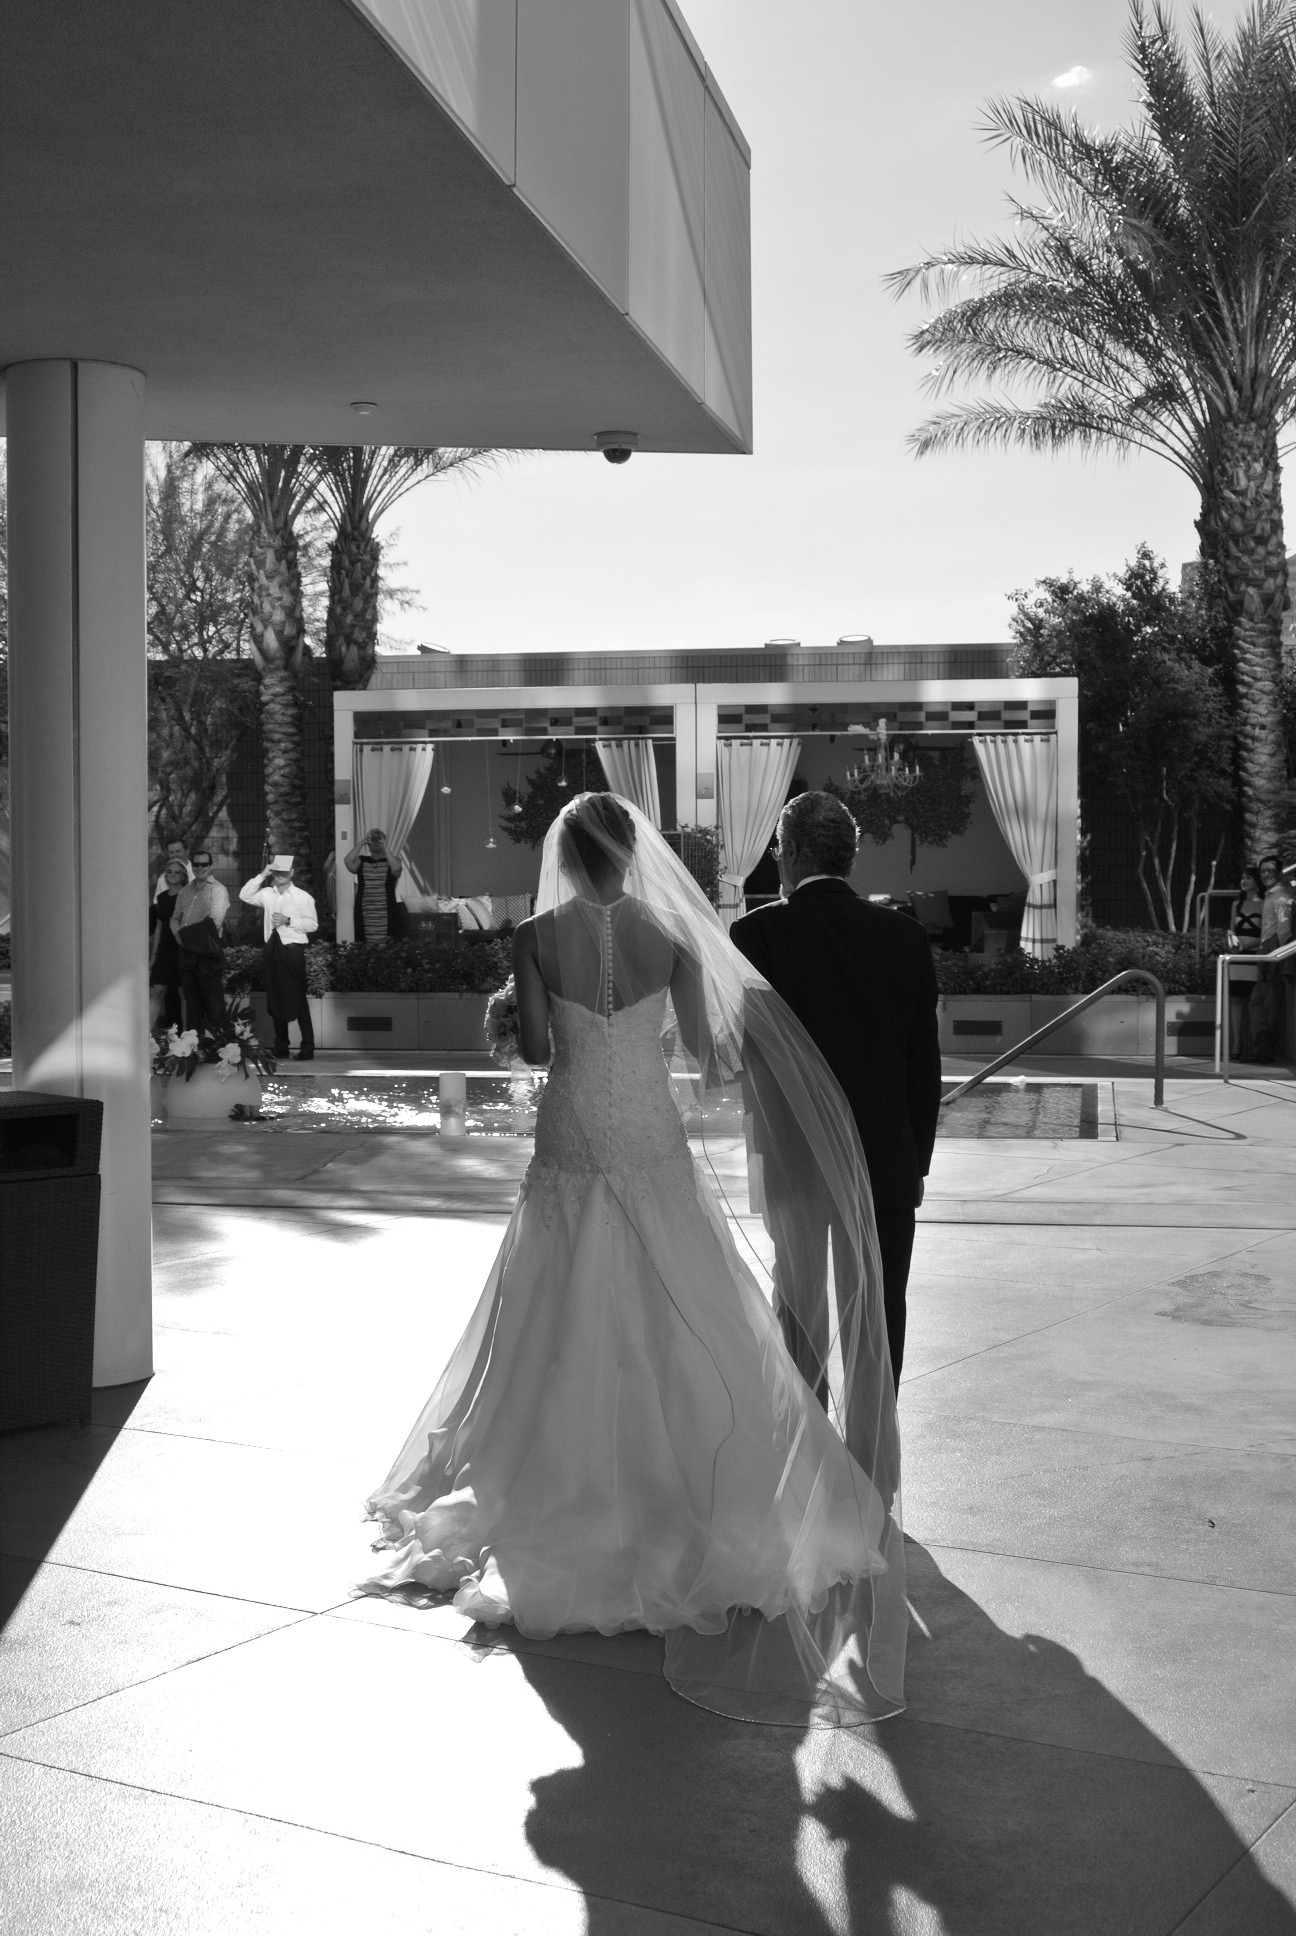 When the time came, my bride Jessica emerged and was walked down the aisle by her father.     Las Vegas Wedding Planner:    Andrea Eppolito Events    |  Wedding Venue:    Mandarin Oriental Las Vegas